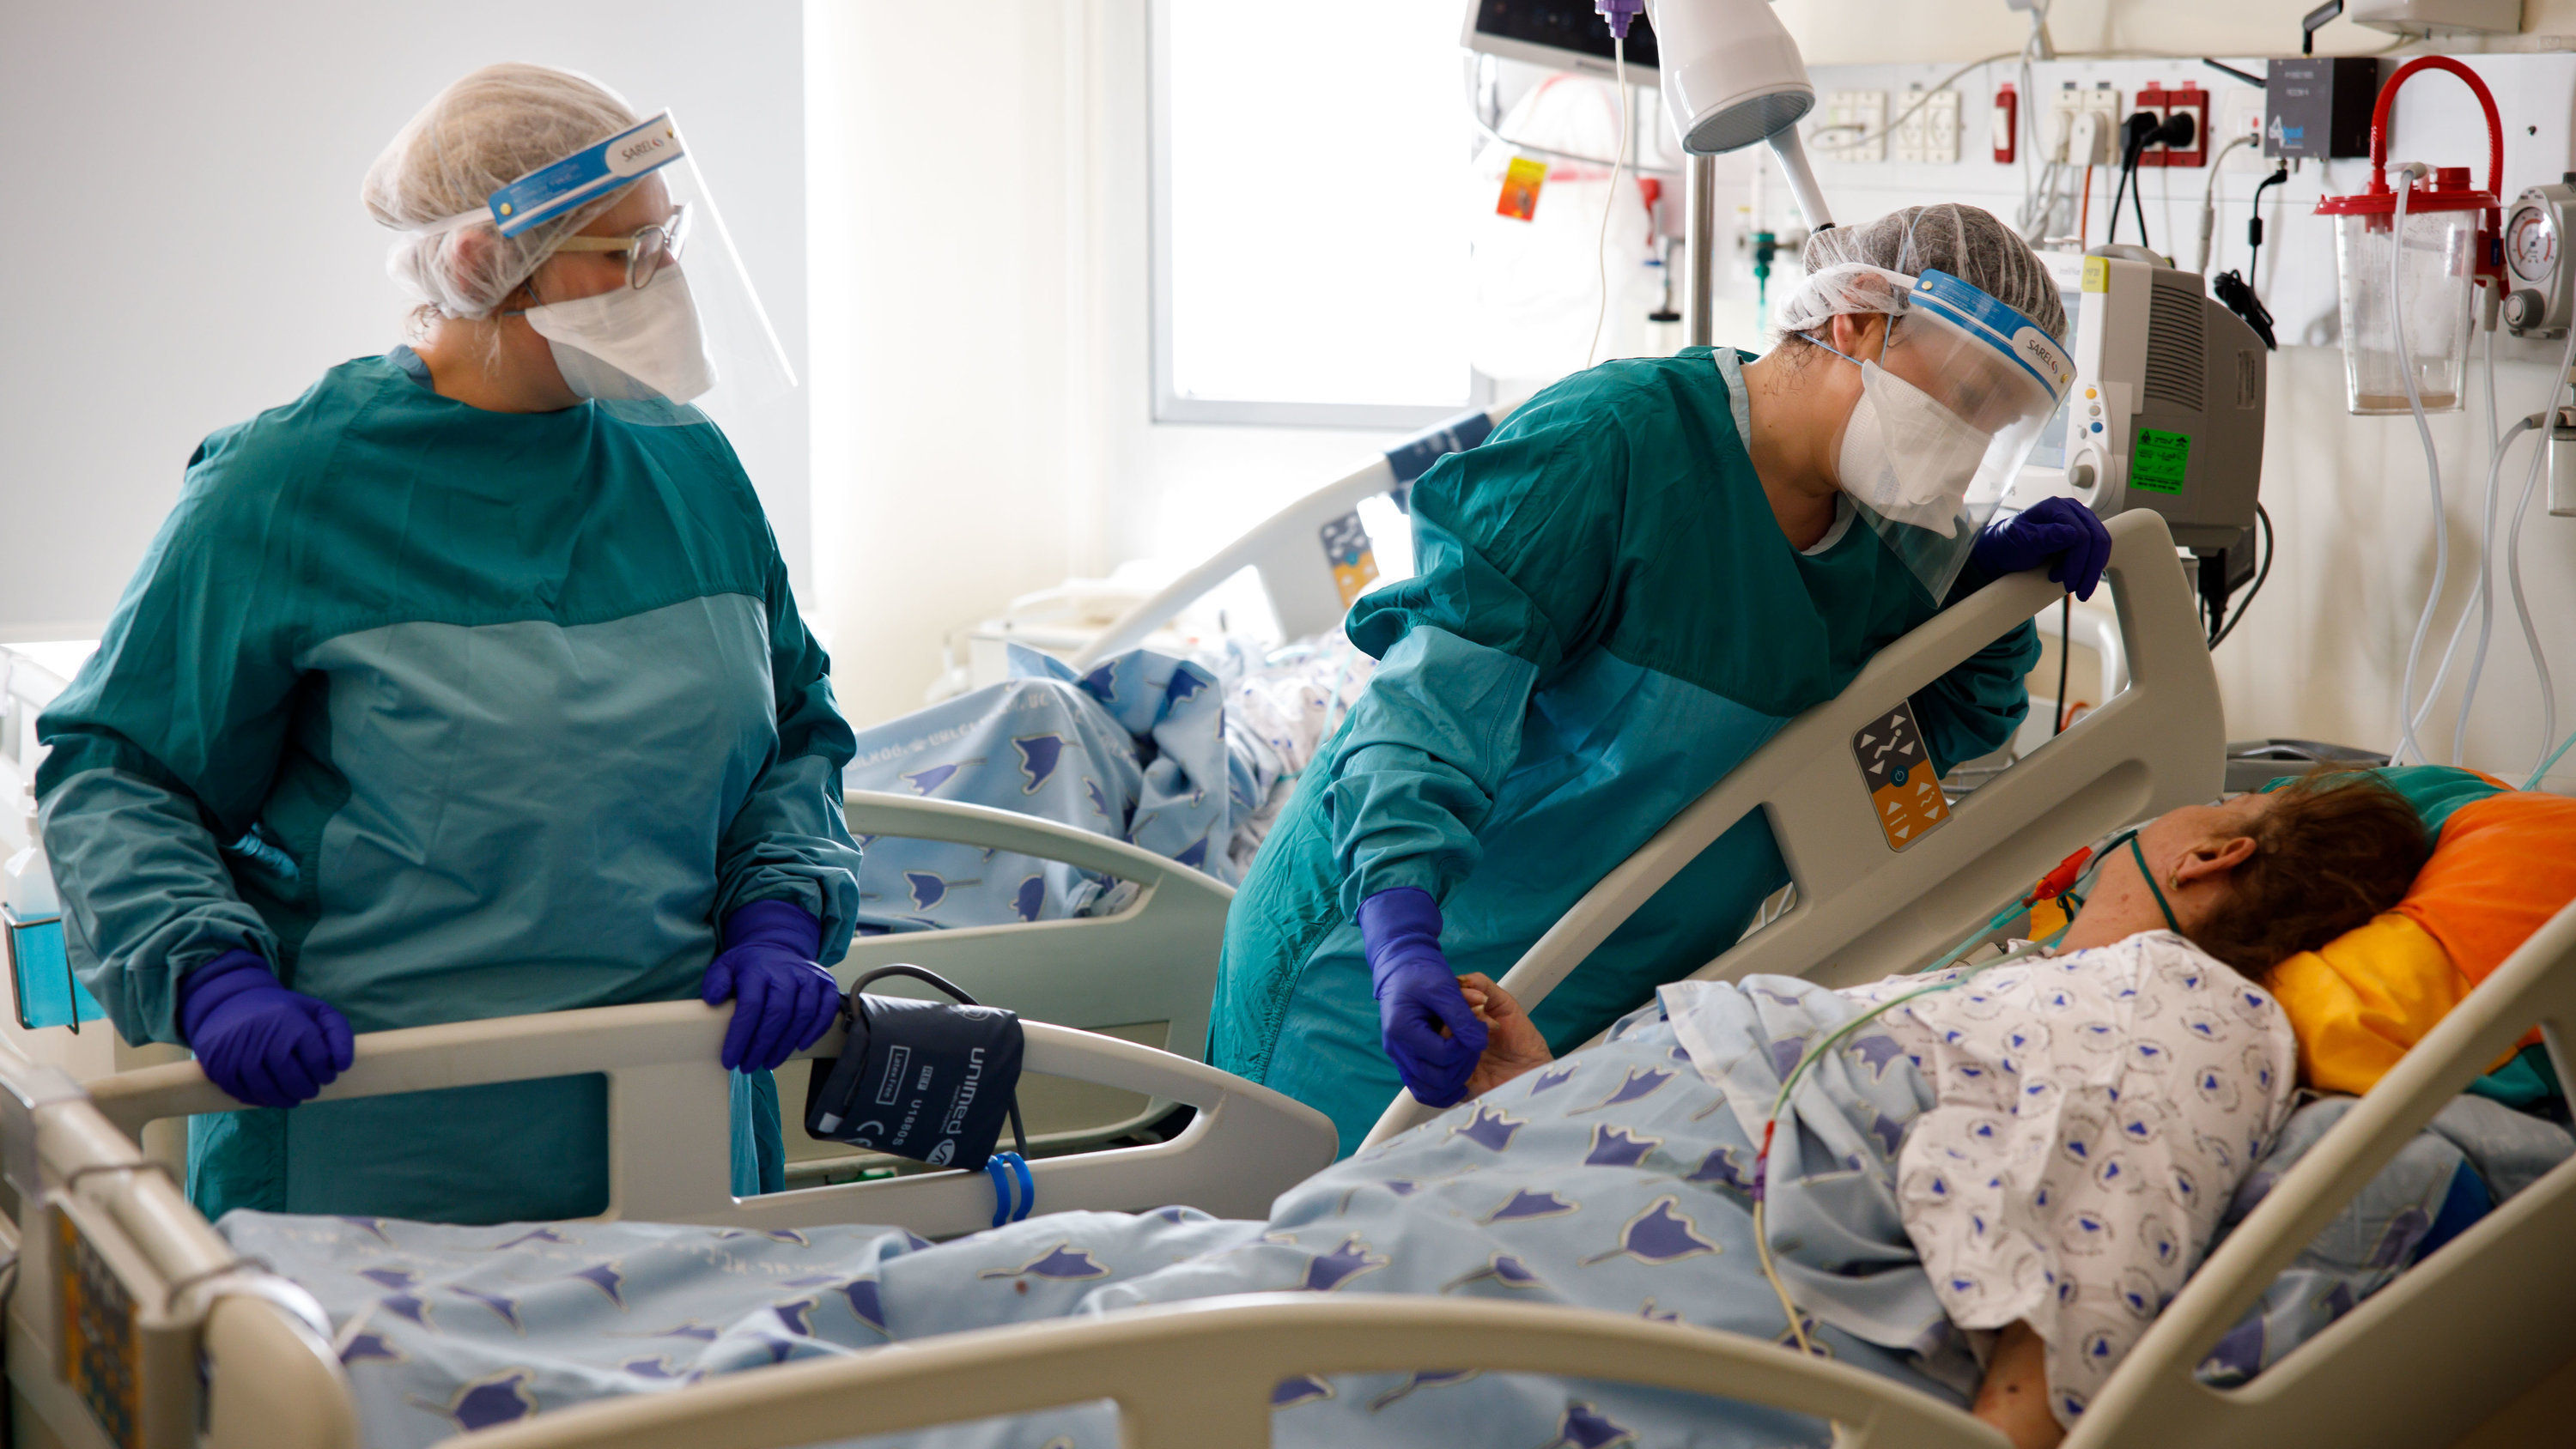 Hospitals in Latin America Are Starting to Allow Visits to COVID Patients